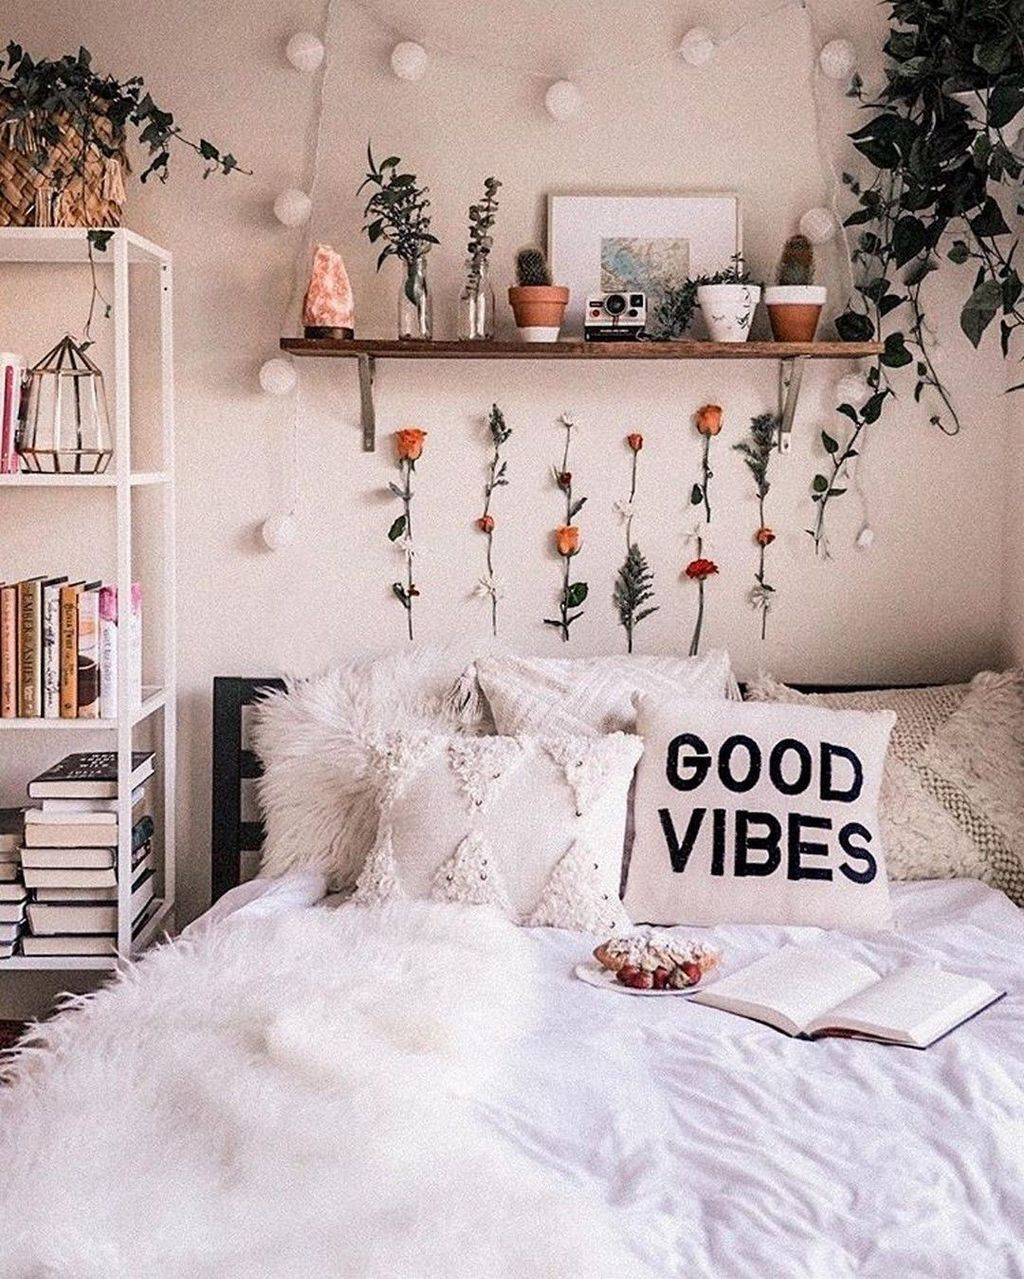 30+ Splendid Dorm Room Ideas To Tare Room Decor To The Next Level